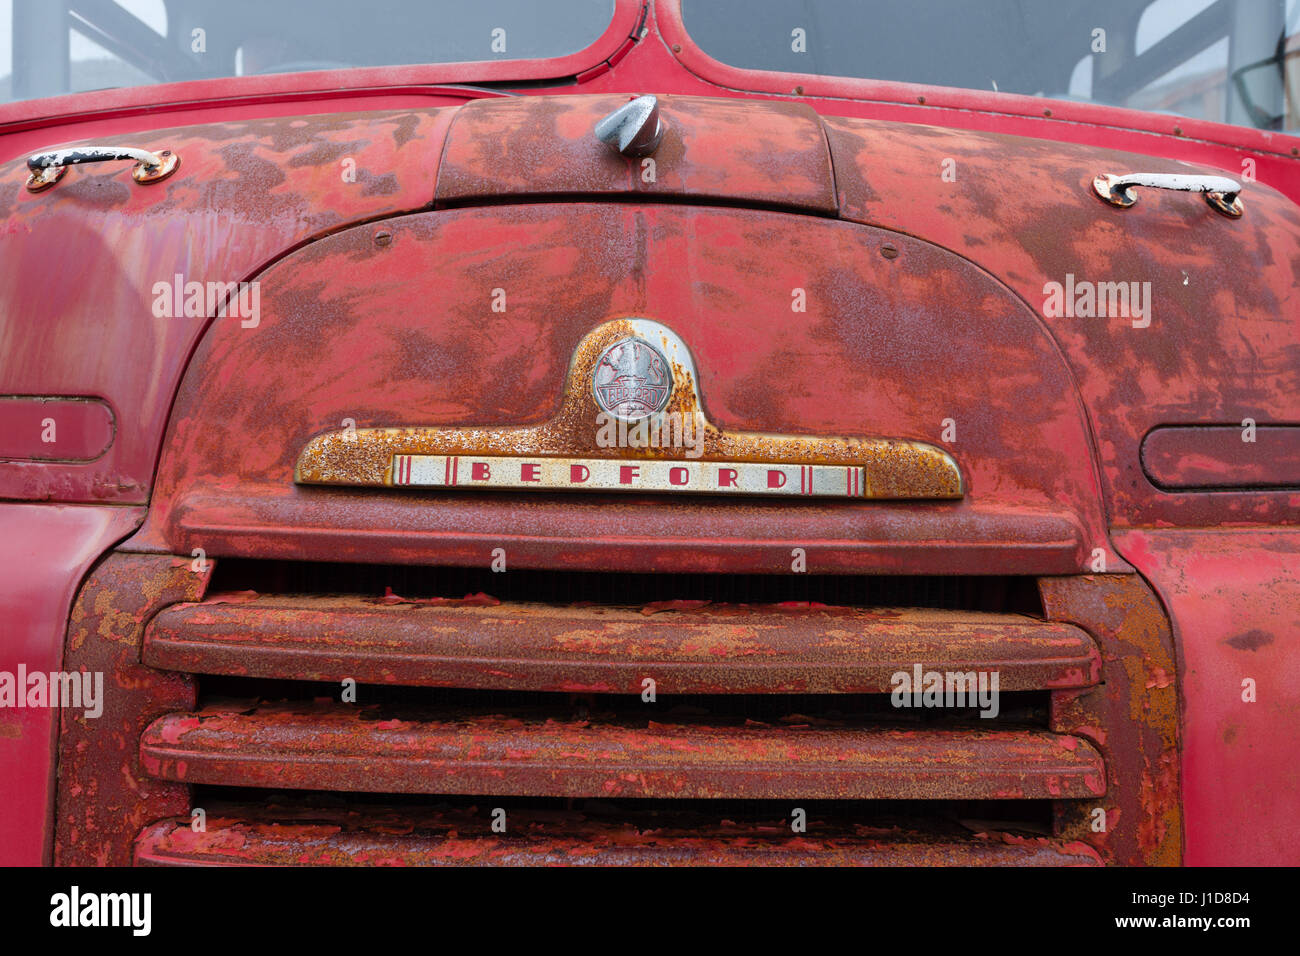 Beford vintage lorry, Iceland, Northern Europe - Stock Image